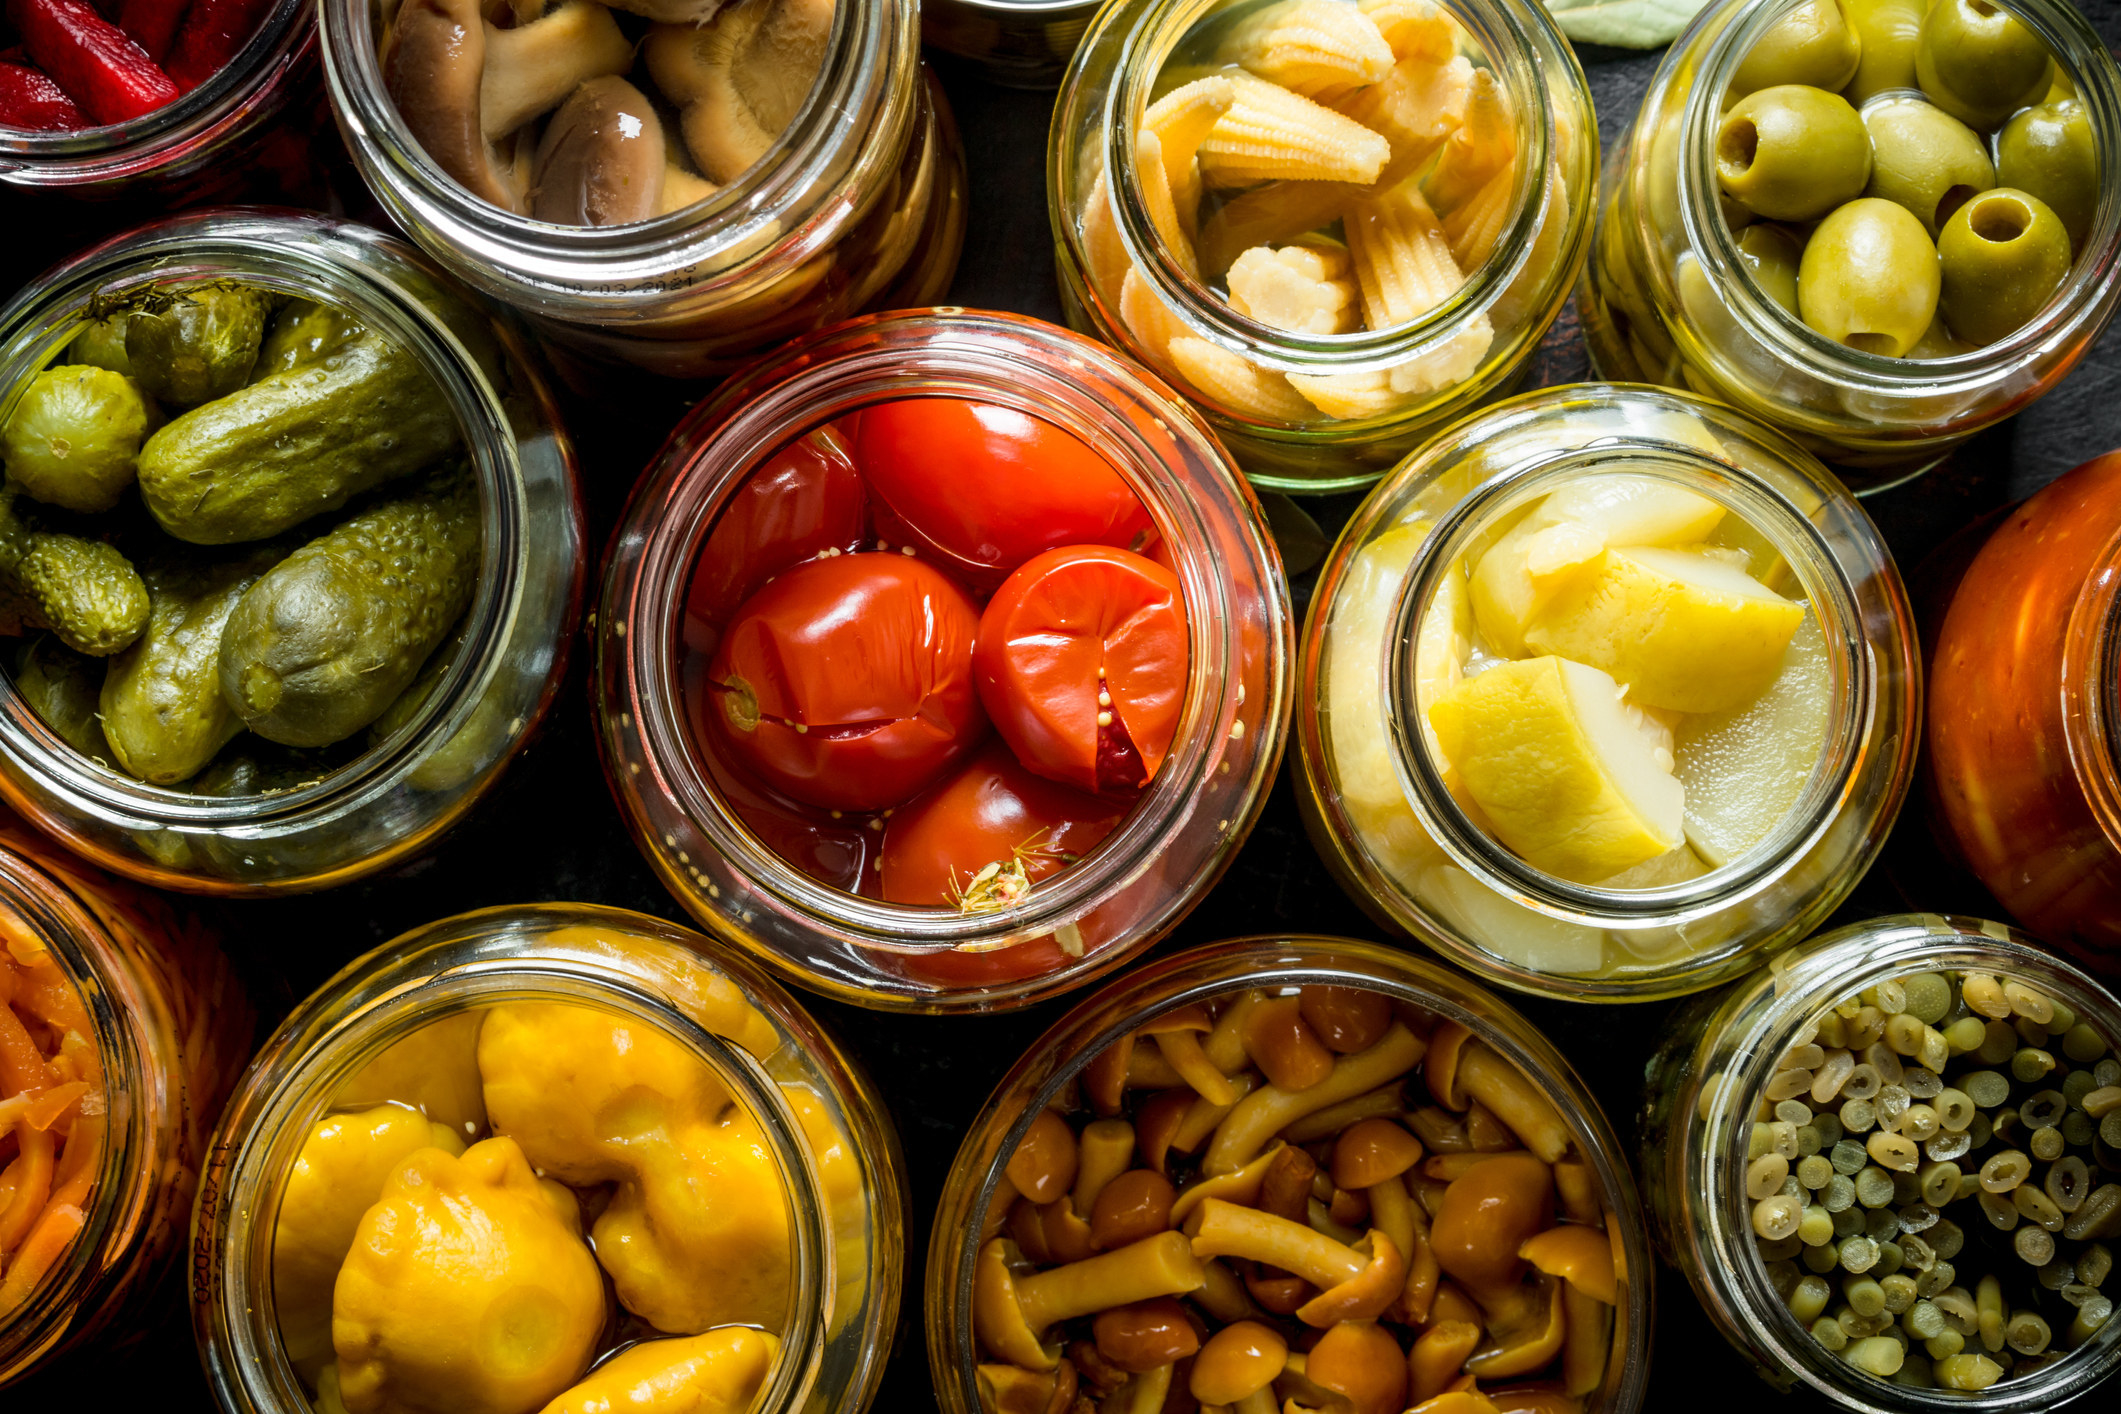 Different pickled veggies in glass jars.